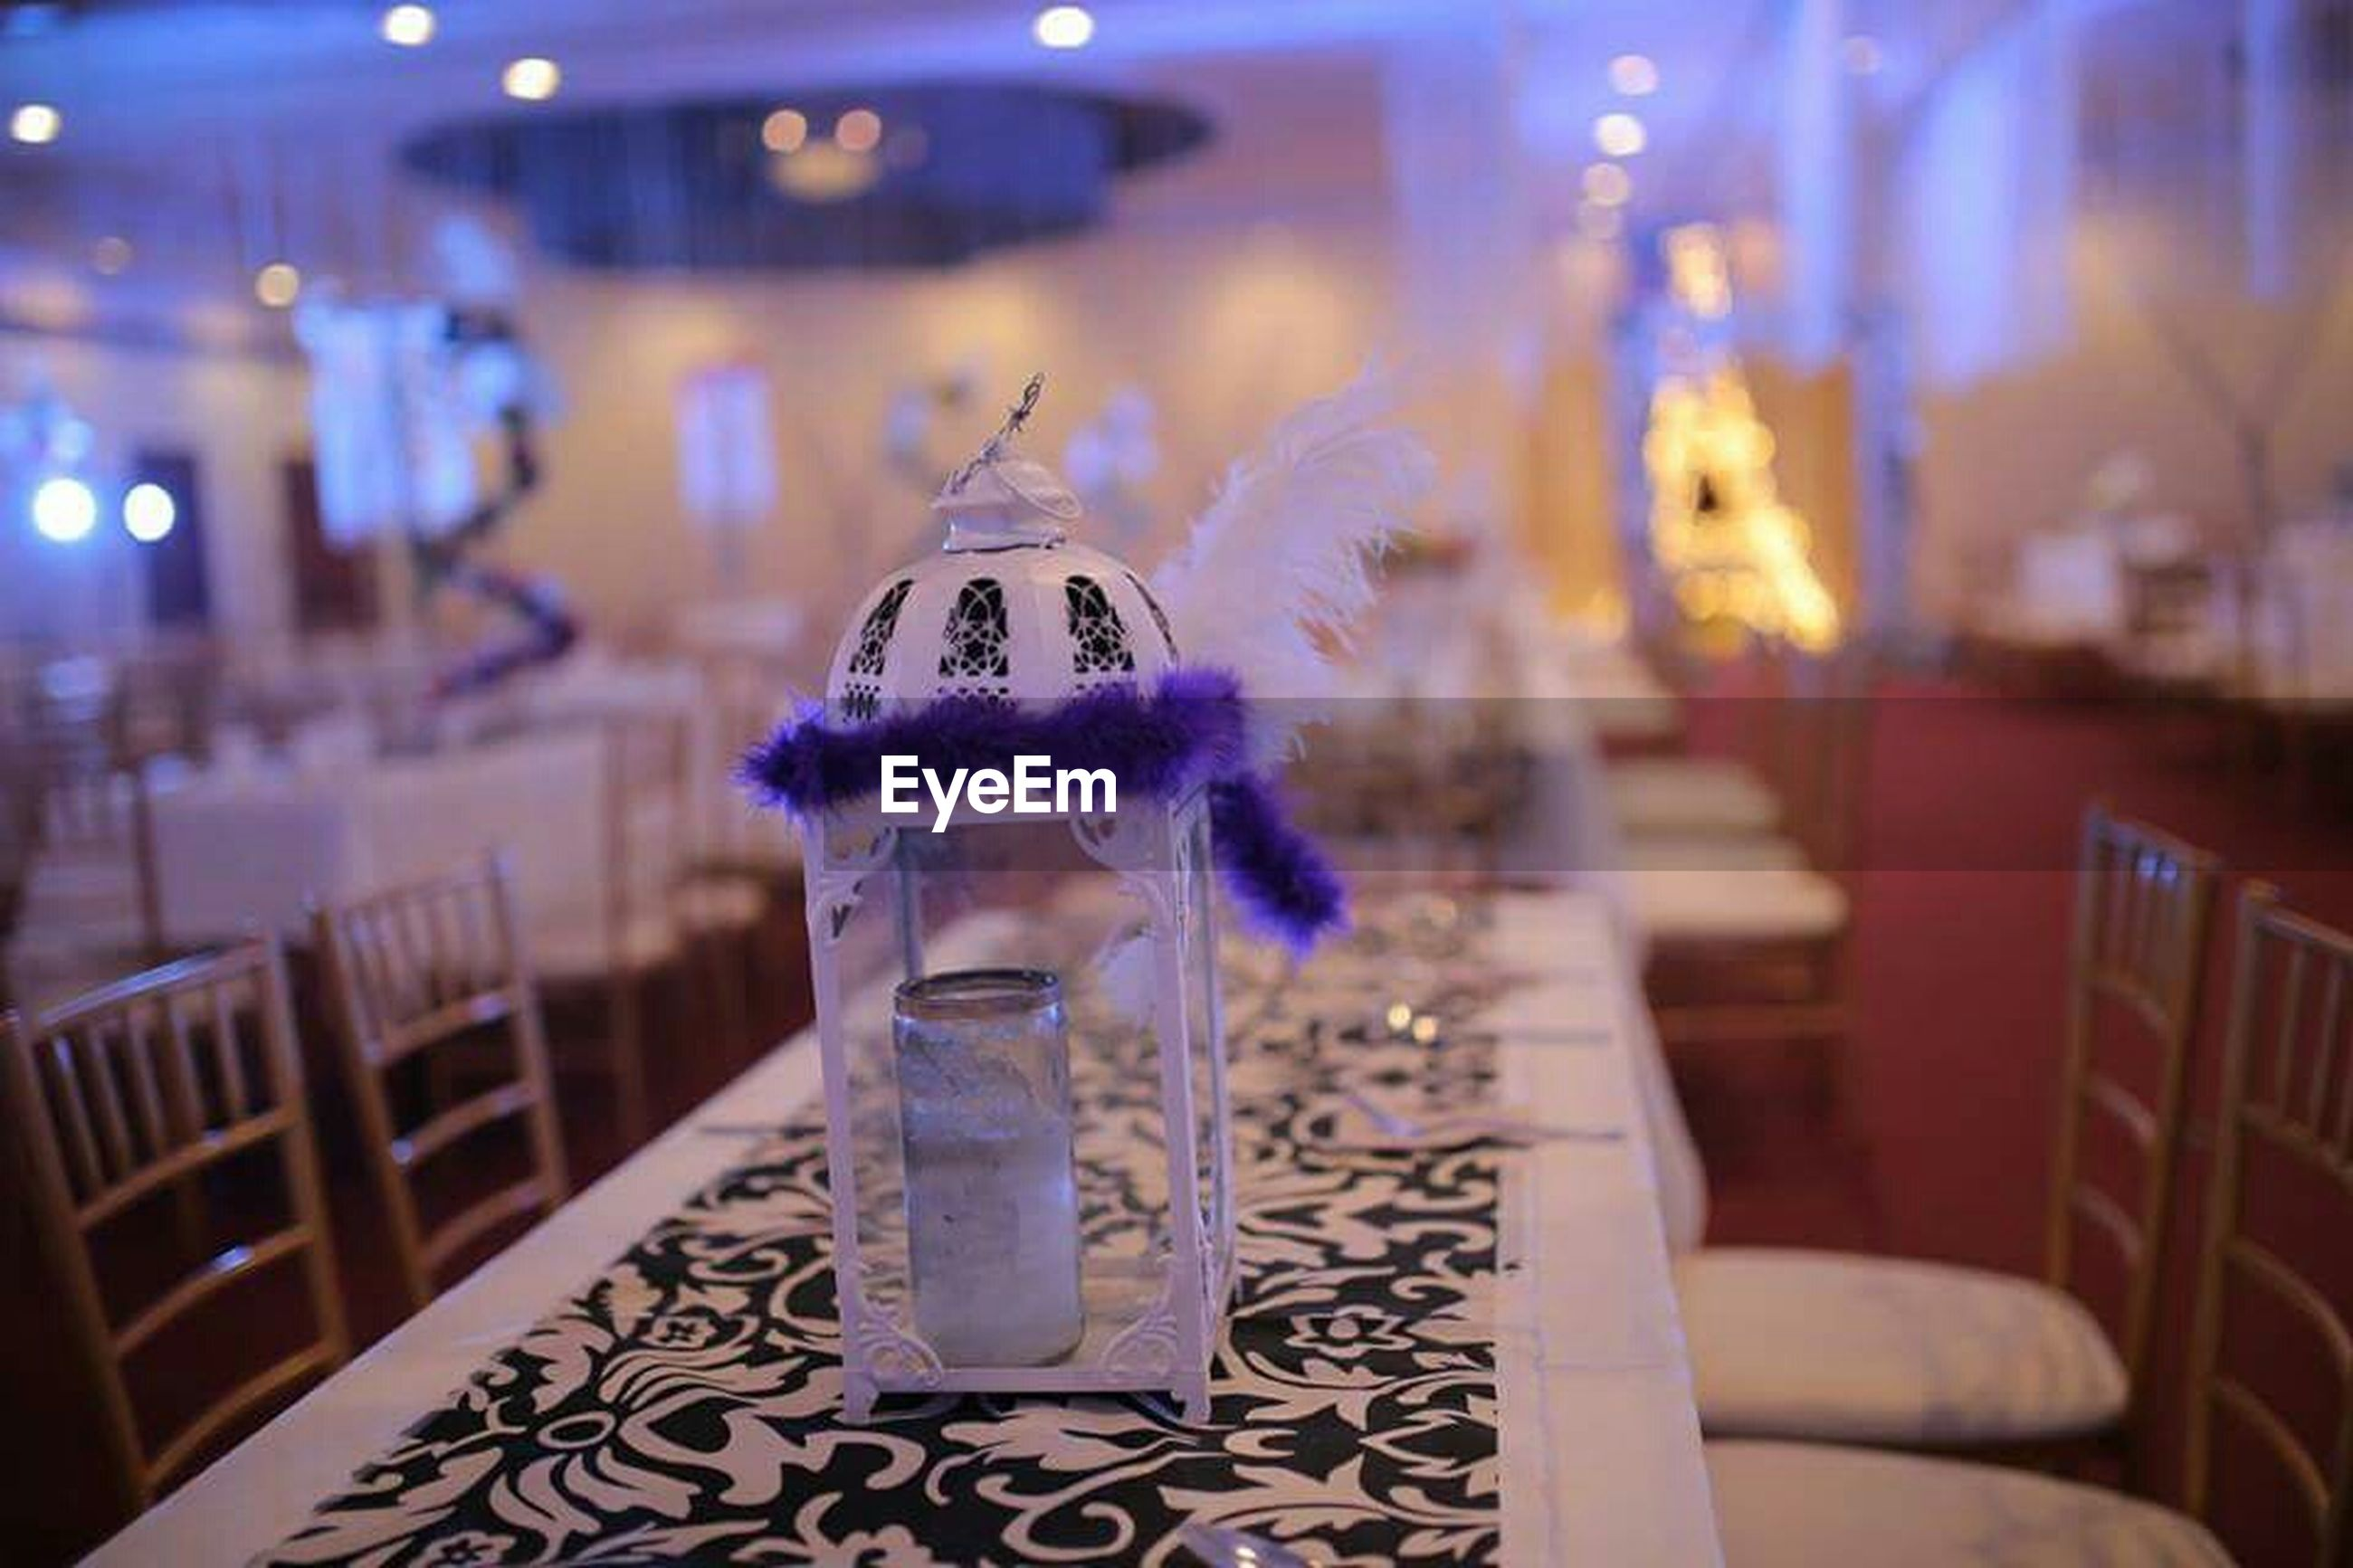 indoors, focus on foreground, illuminated, night, table, close-up, incidental people, selective focus, blue, glass - material, restaurant, lighting equipment, drinking glass, no people, decoration, still life, home interior, transparent, celebration, reflection